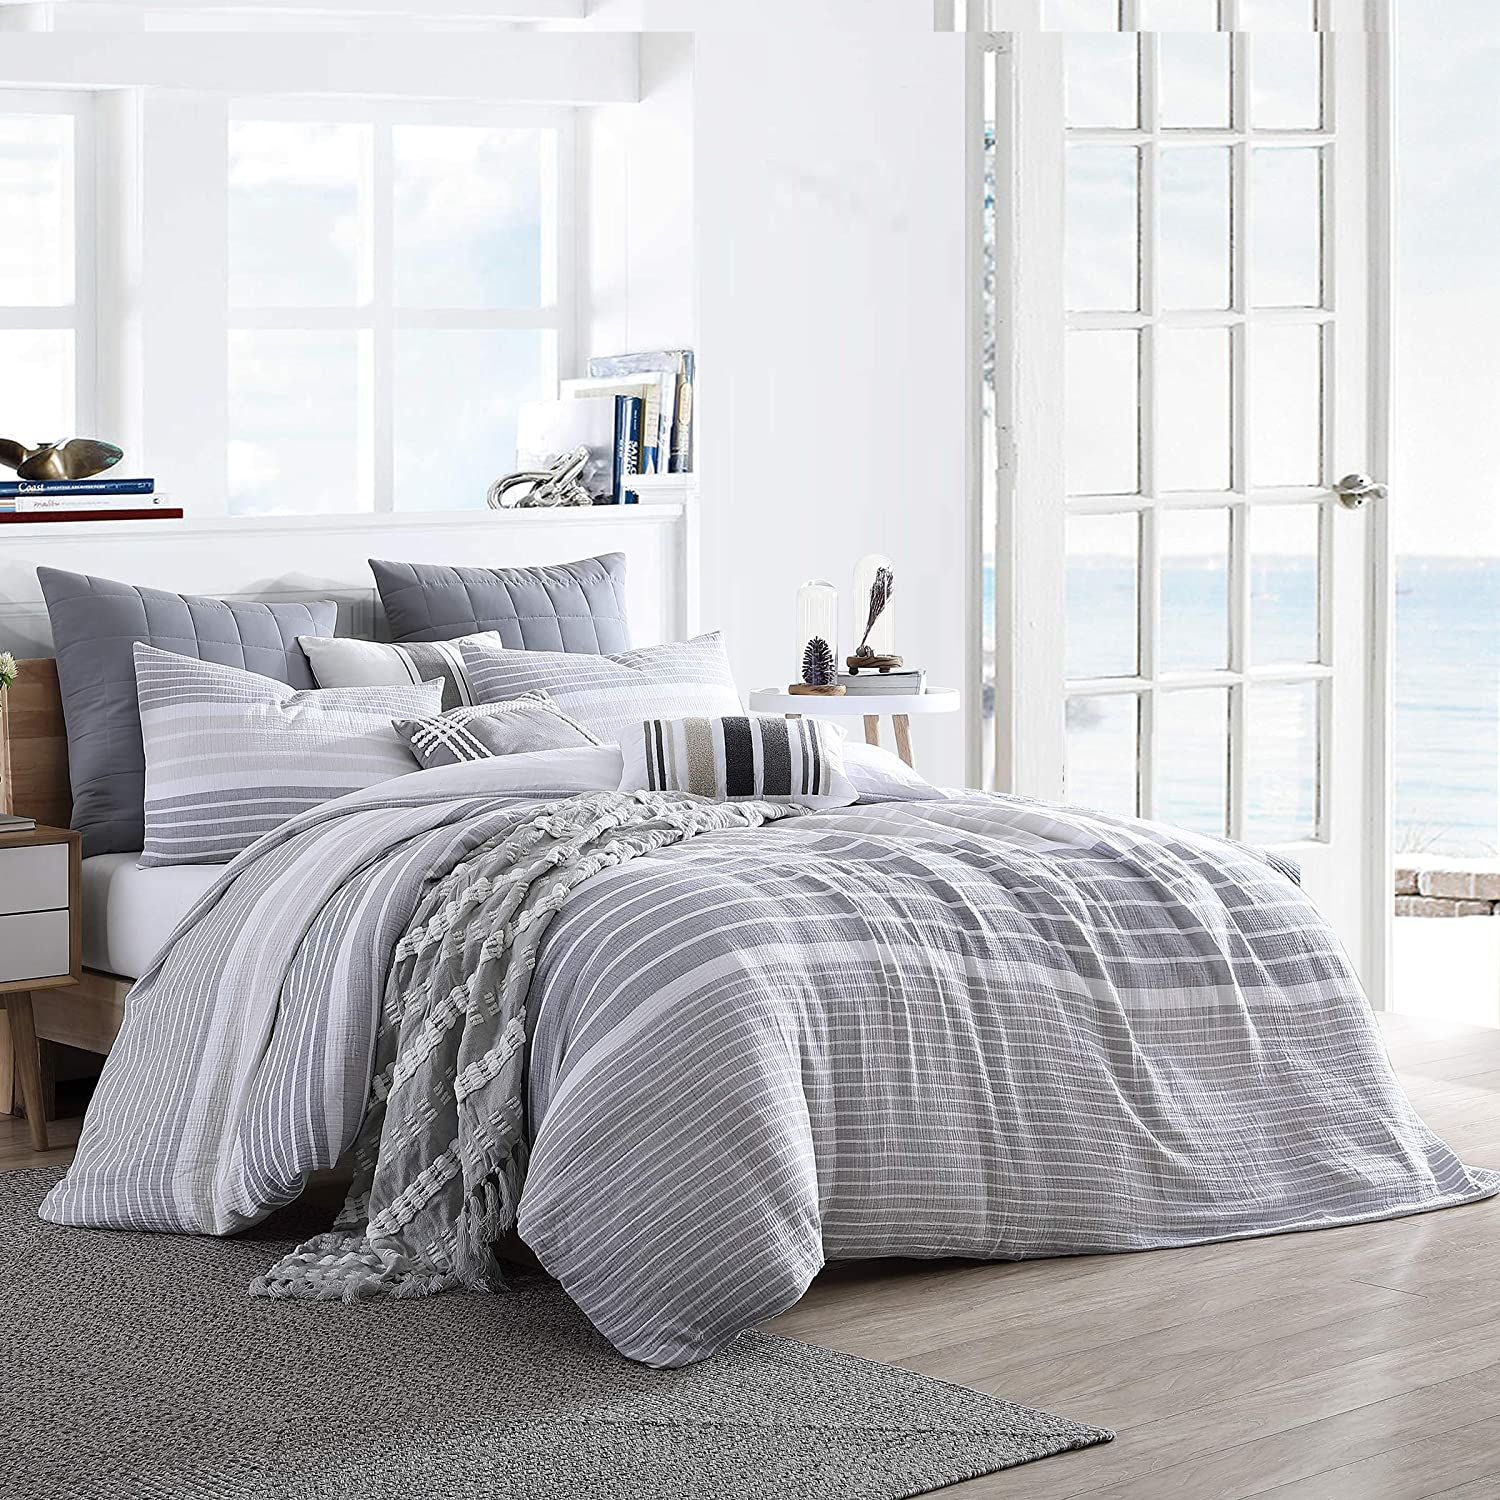 Swift Home Cordelia Prewashed Yarn-Dyed 100% Cotton Gauze Stripe Duvet Cover Set, Oeko-Tex Certified, Ultra Soft and Breathable, Button Closure, All Season - Grey, Twin/Twin XL (68